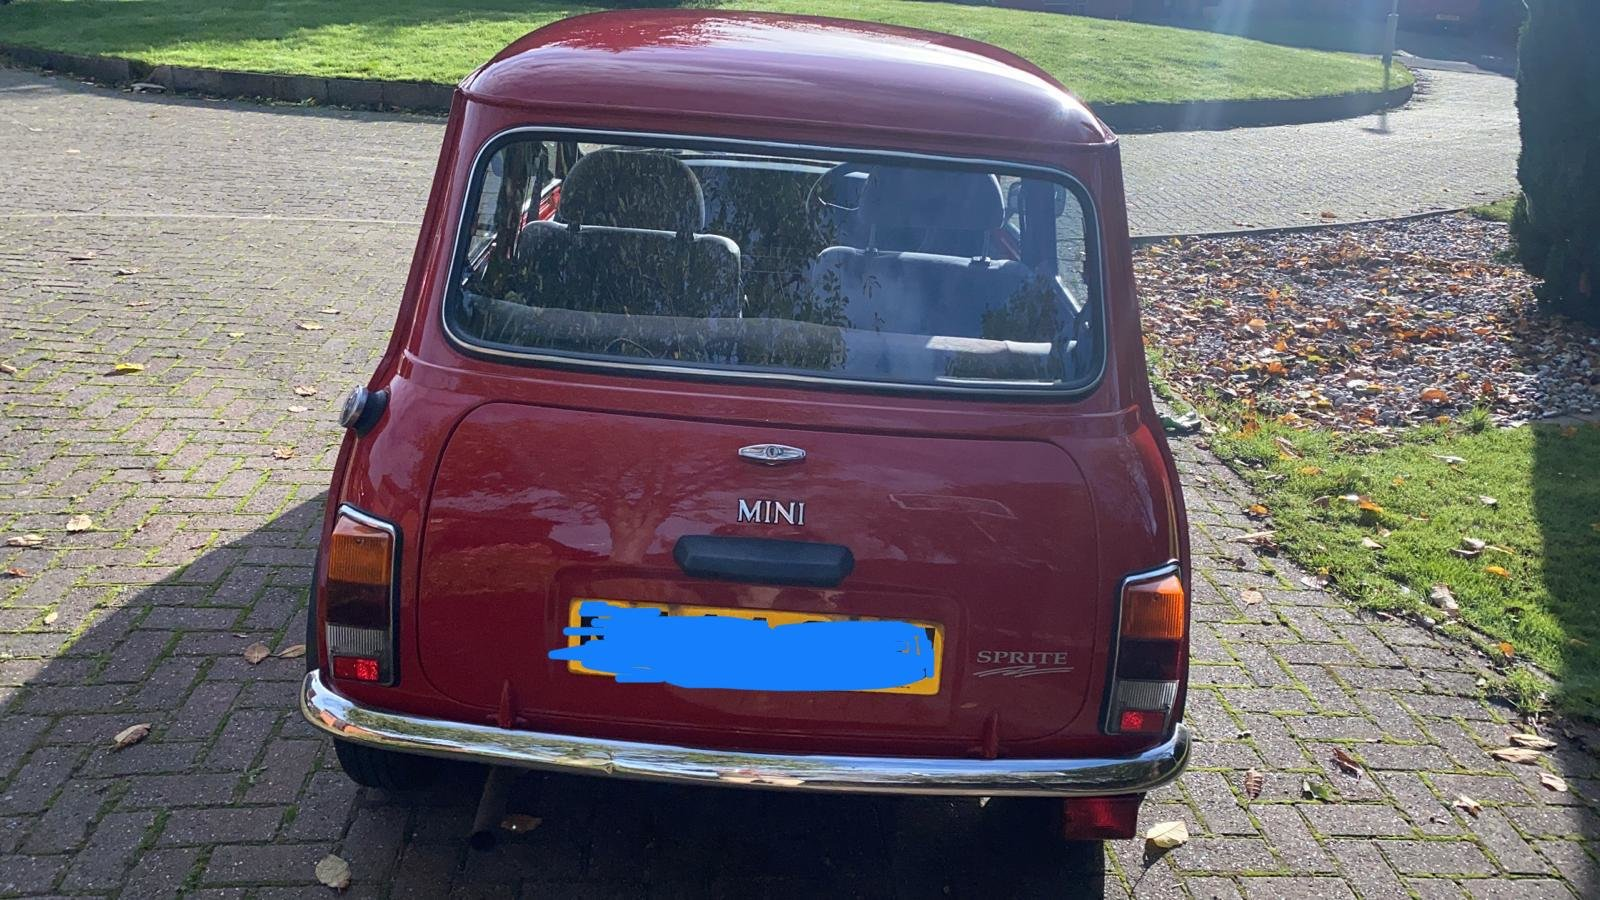 Stunning 1995 Mini Sprite only 35,000 miles SOLD (picture 3 of 6)